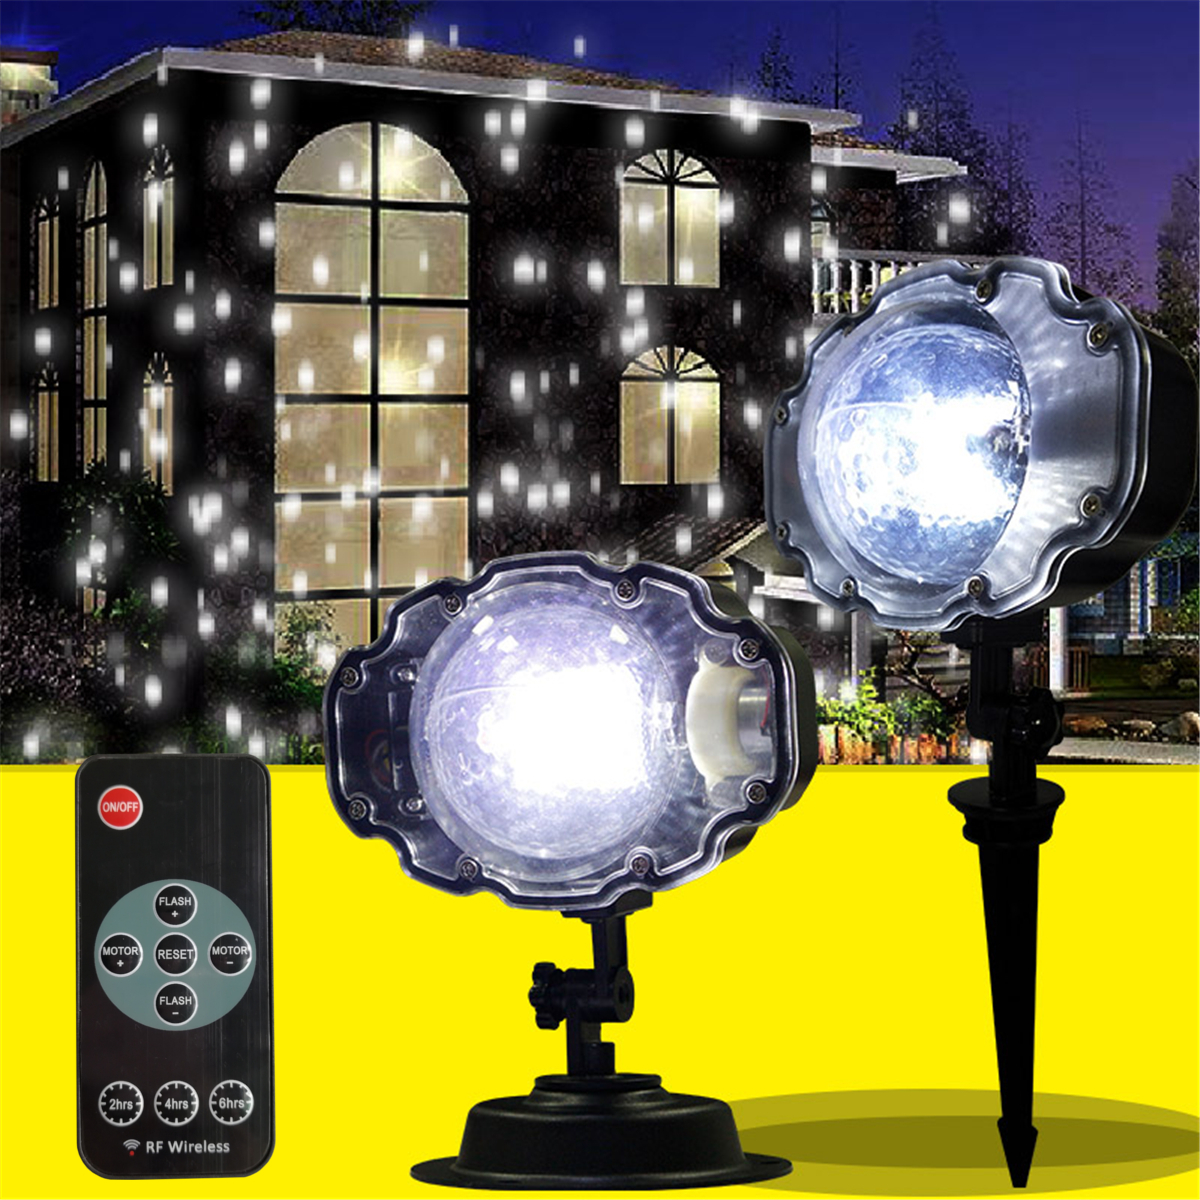 Outdoor Waterproof Laser Projector Snowflake LED Lamp Light Mini Adjustable Snowflake Light Christmas Garden Home Decor Light купить в Москве 2019